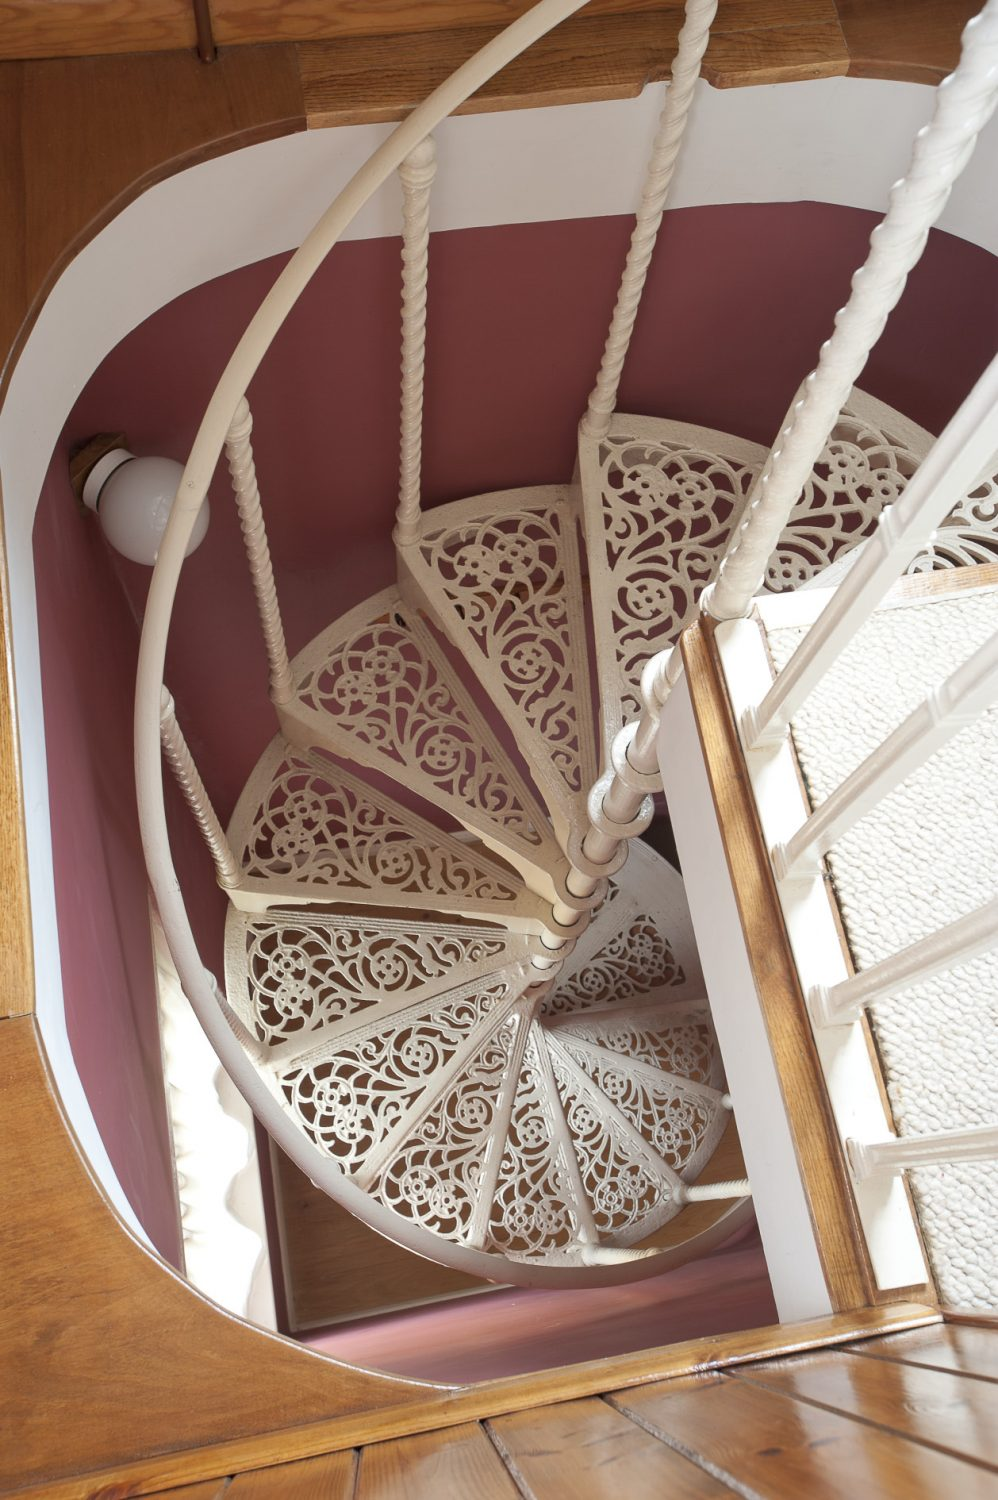 The intricate wrought-iron spiral staircase